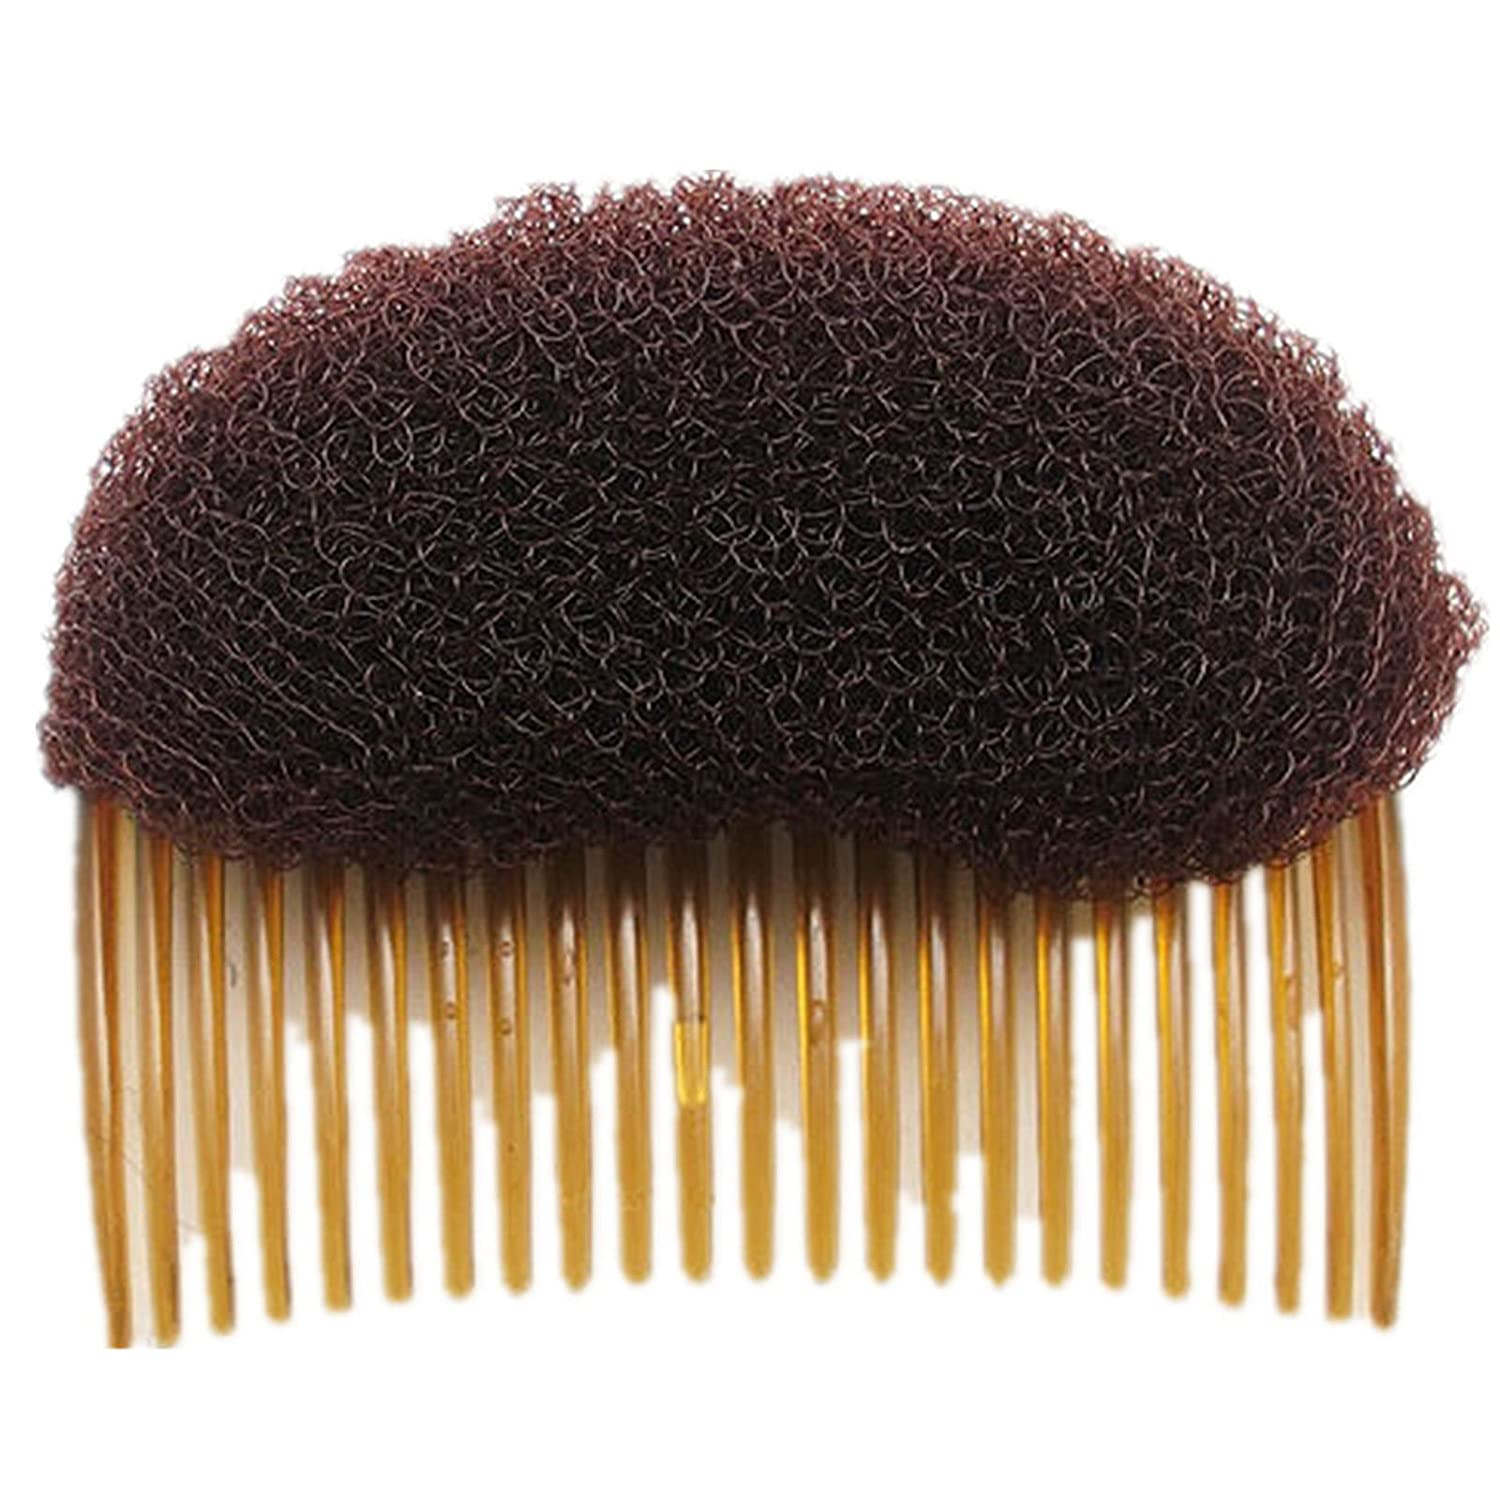 1PC Black/Brown colors for choose Charming BUMP IT UP Volume Inserts Do Beehive hair styler Insert Tool Hair Comb Hot (Brown) ZMWL MF05